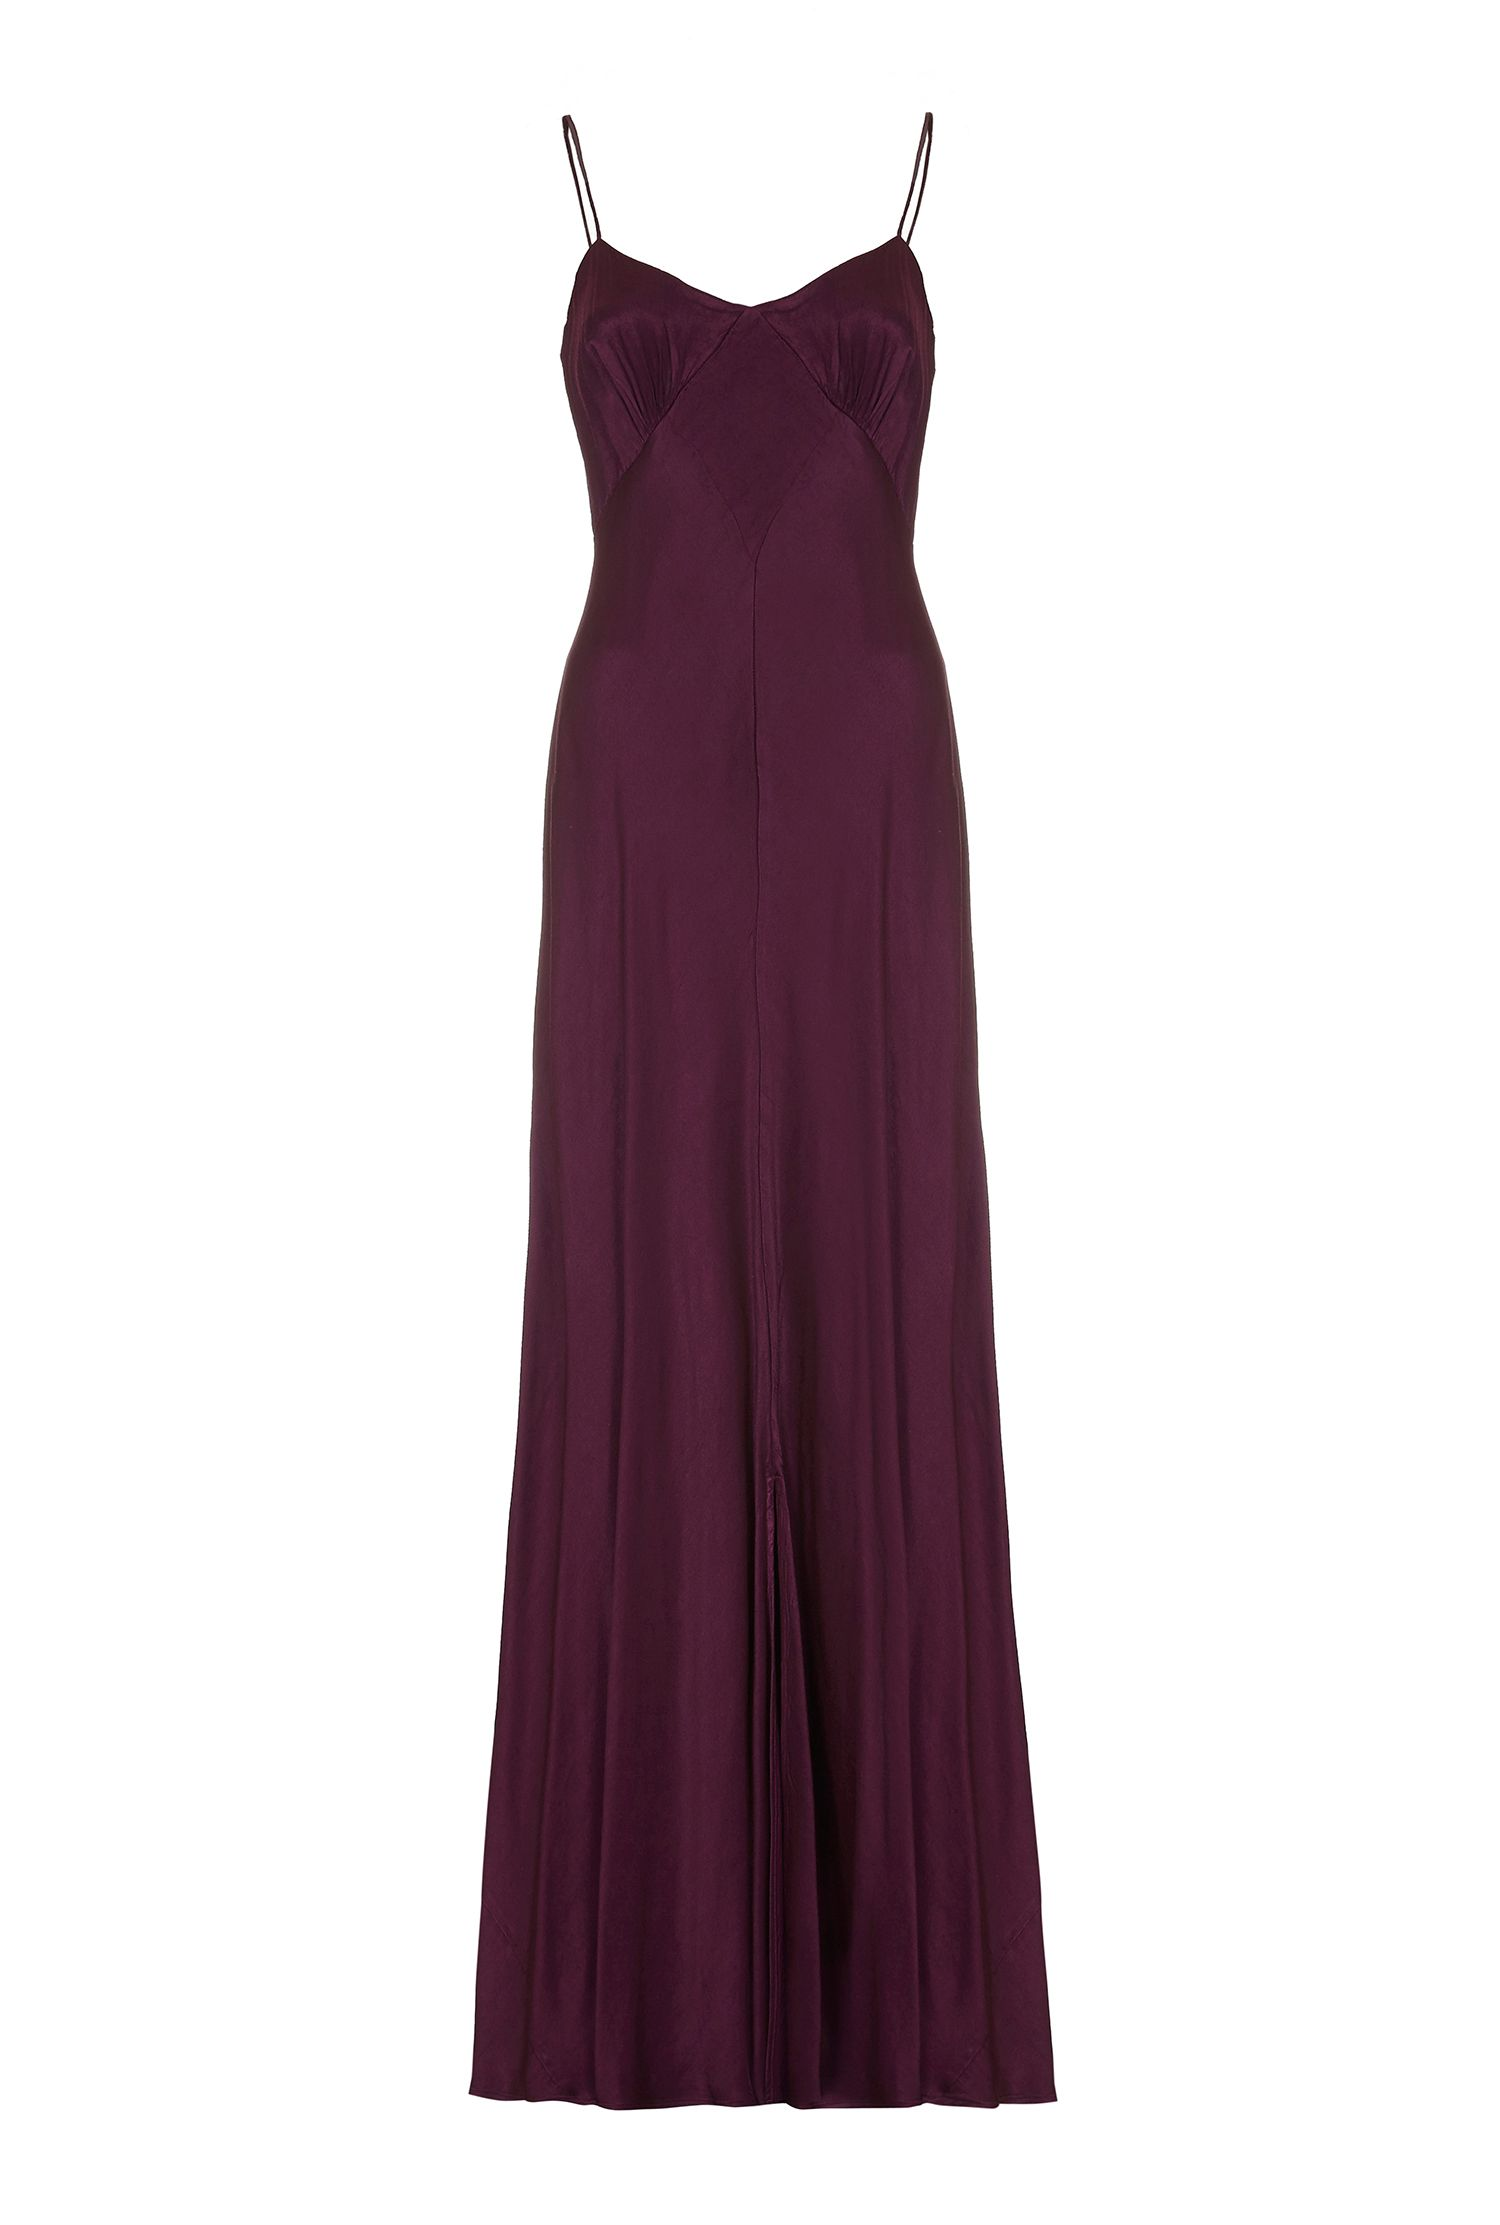 Ghost Ivy Dress, Purple